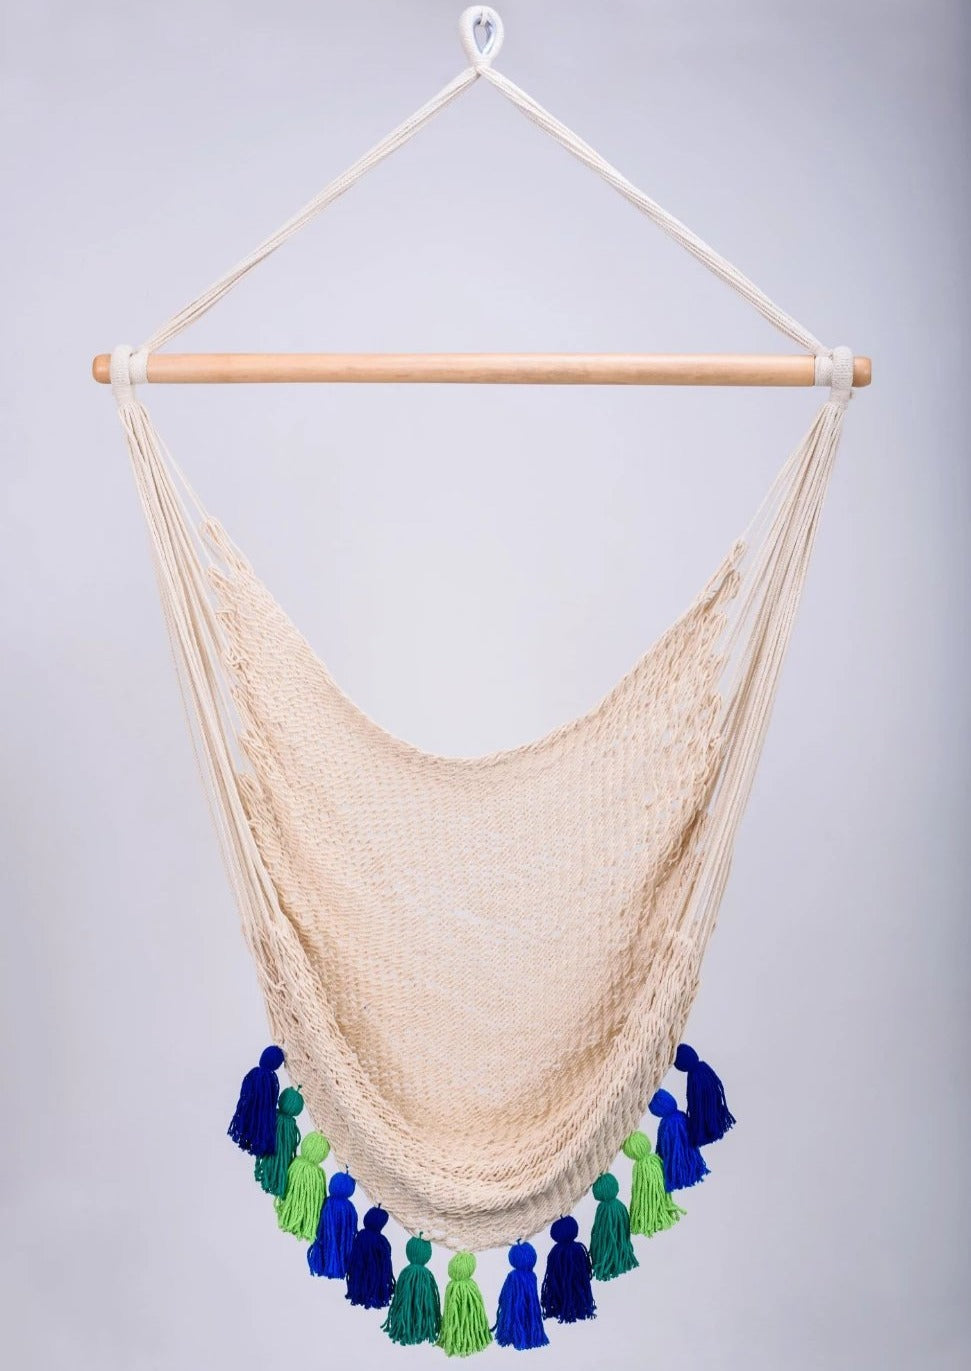 Cotton Natural Hammock Swing With Tassels Handmade High Quality